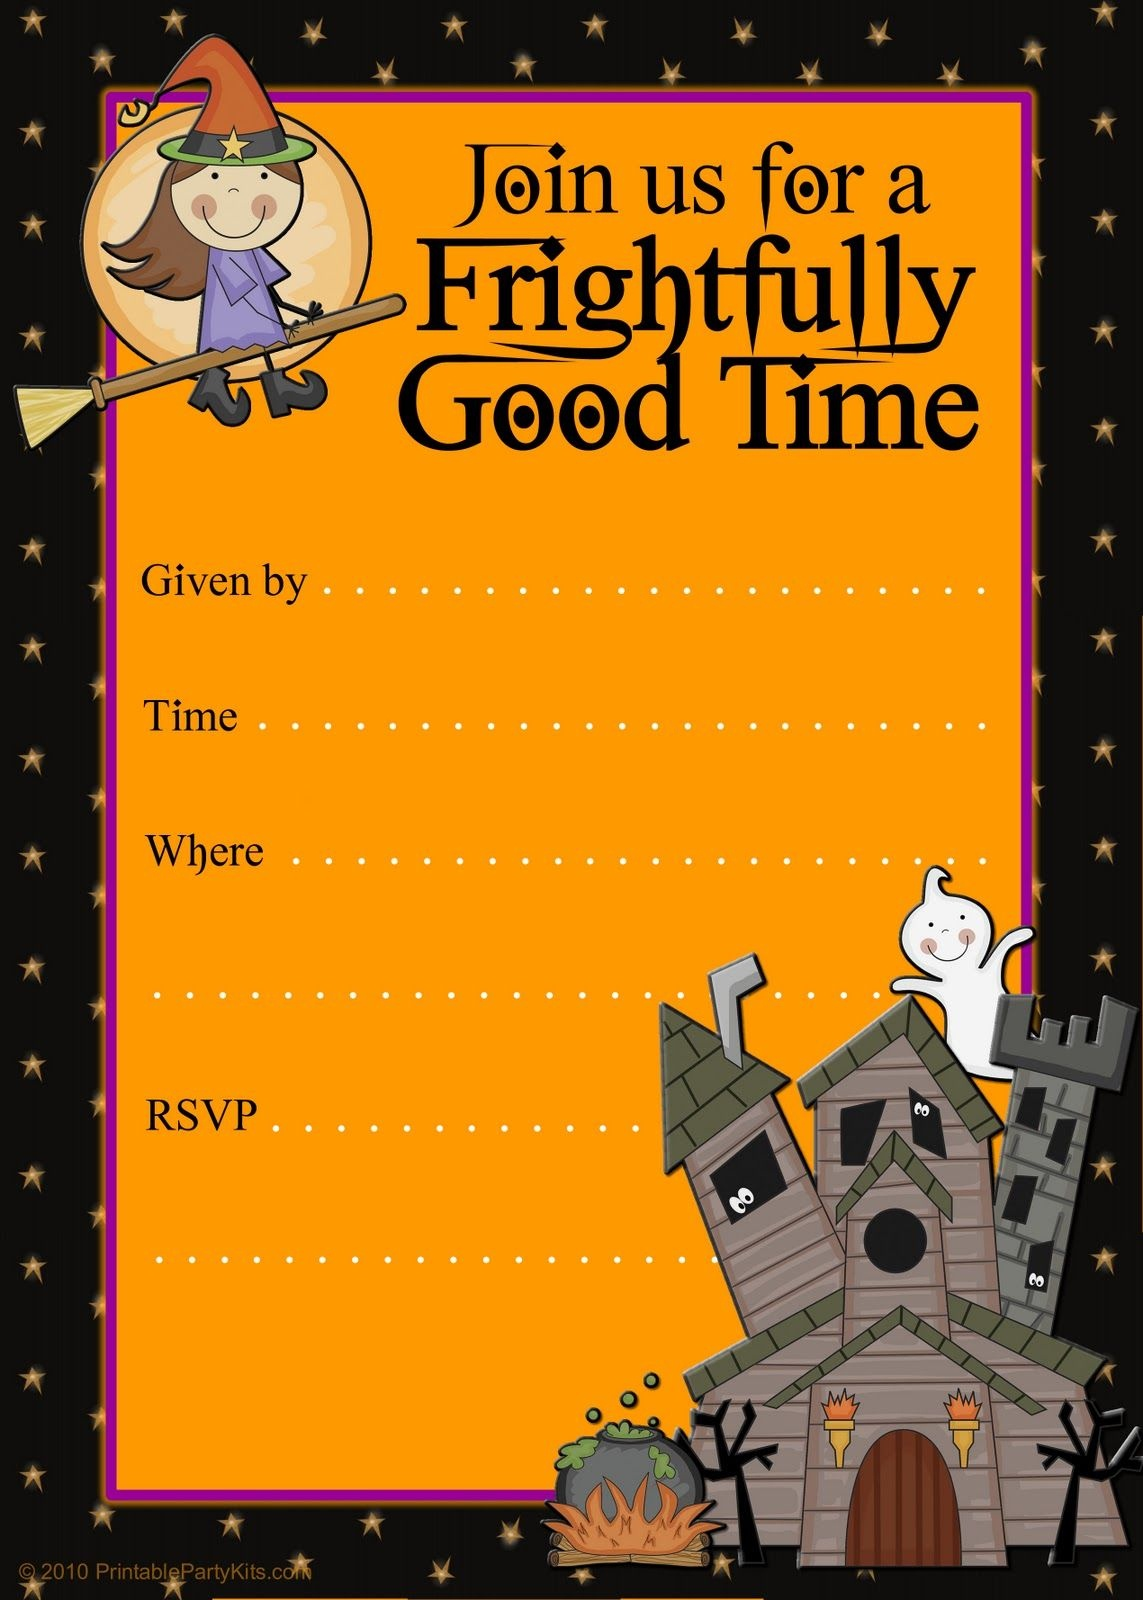 Halloween Party Invitations   Halloween Party Invitation Templates - Free Halloween Birthday Invitation Templates Printable